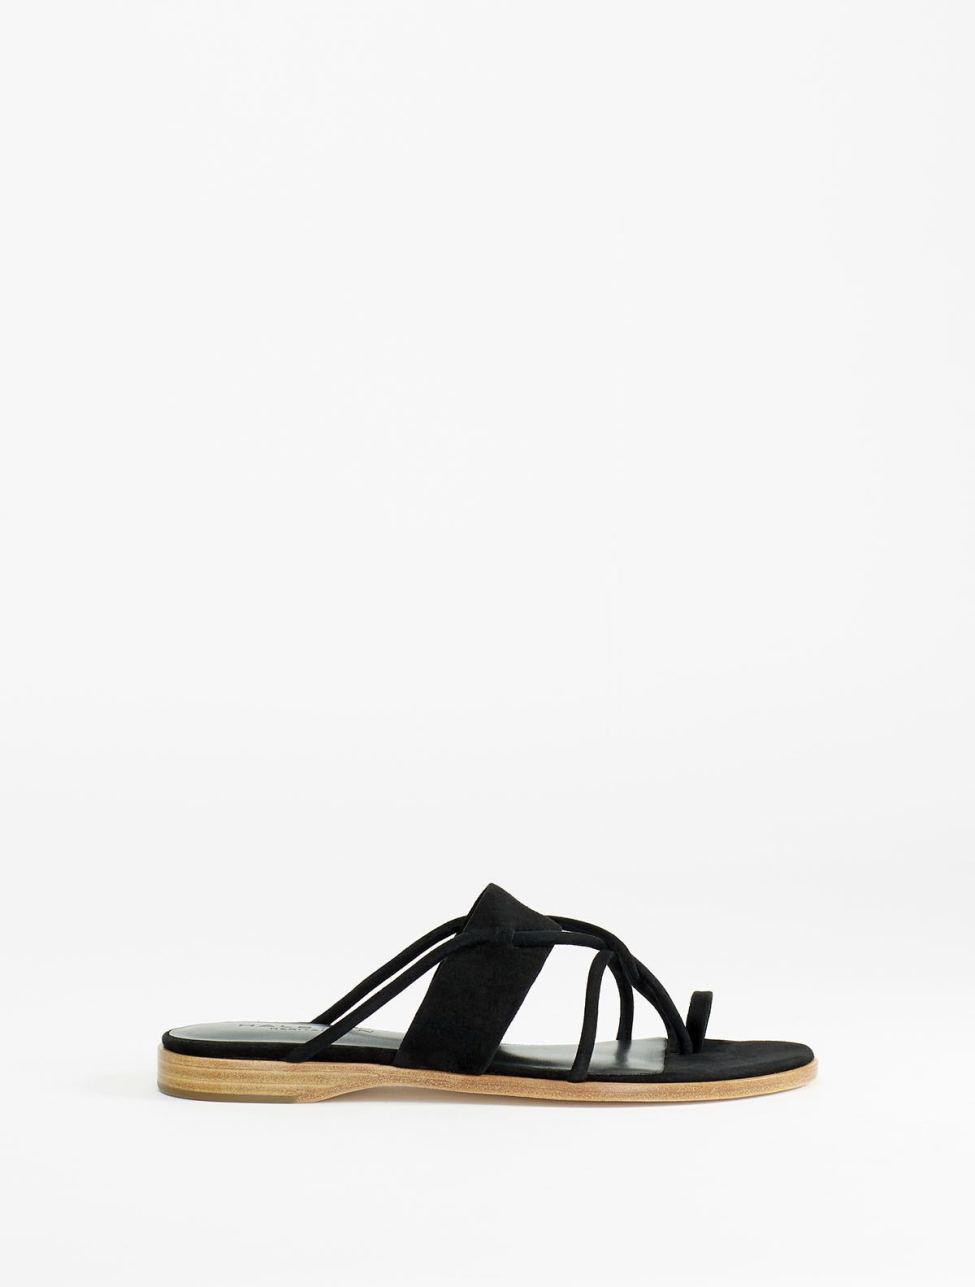 Halston Heritage Woman Estella Frayed Basketweave Canvas Slides Black Size 5 Halston Heritage Buy Cheap Discount Outlet Low Cost Shopping Discounts Online VgiNnuV